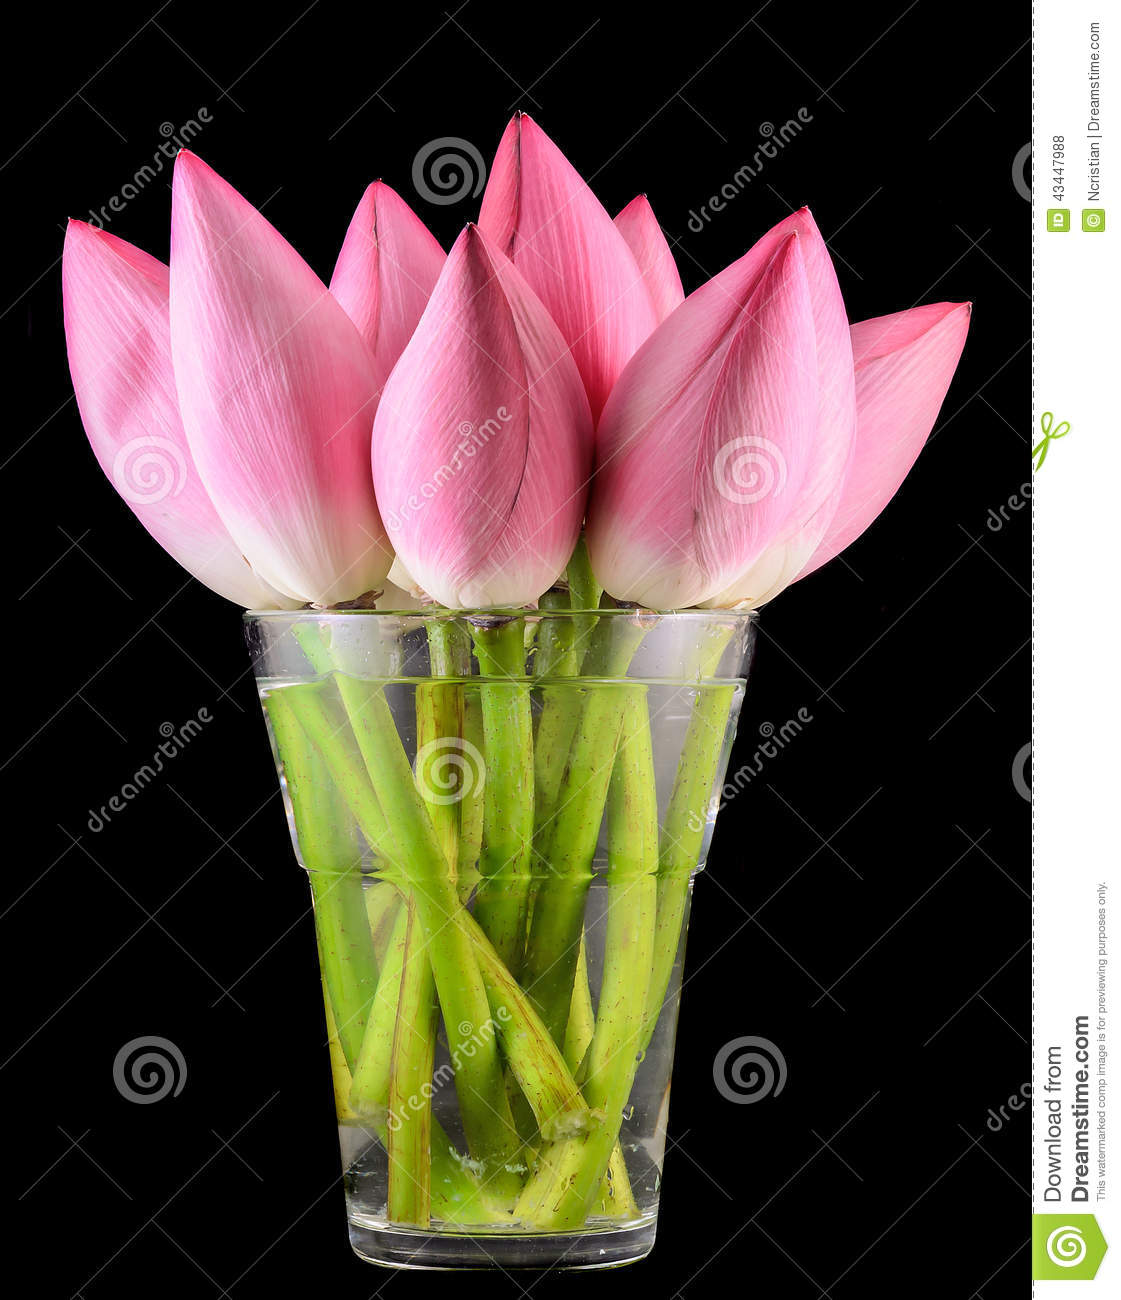 Pink nelumbo nucifera flowers in a transparent vase close up stock pink nelumbo nucifera flowers in a transparent vase close up stock photo image of nelumbo flora 43447988 mightylinksfo